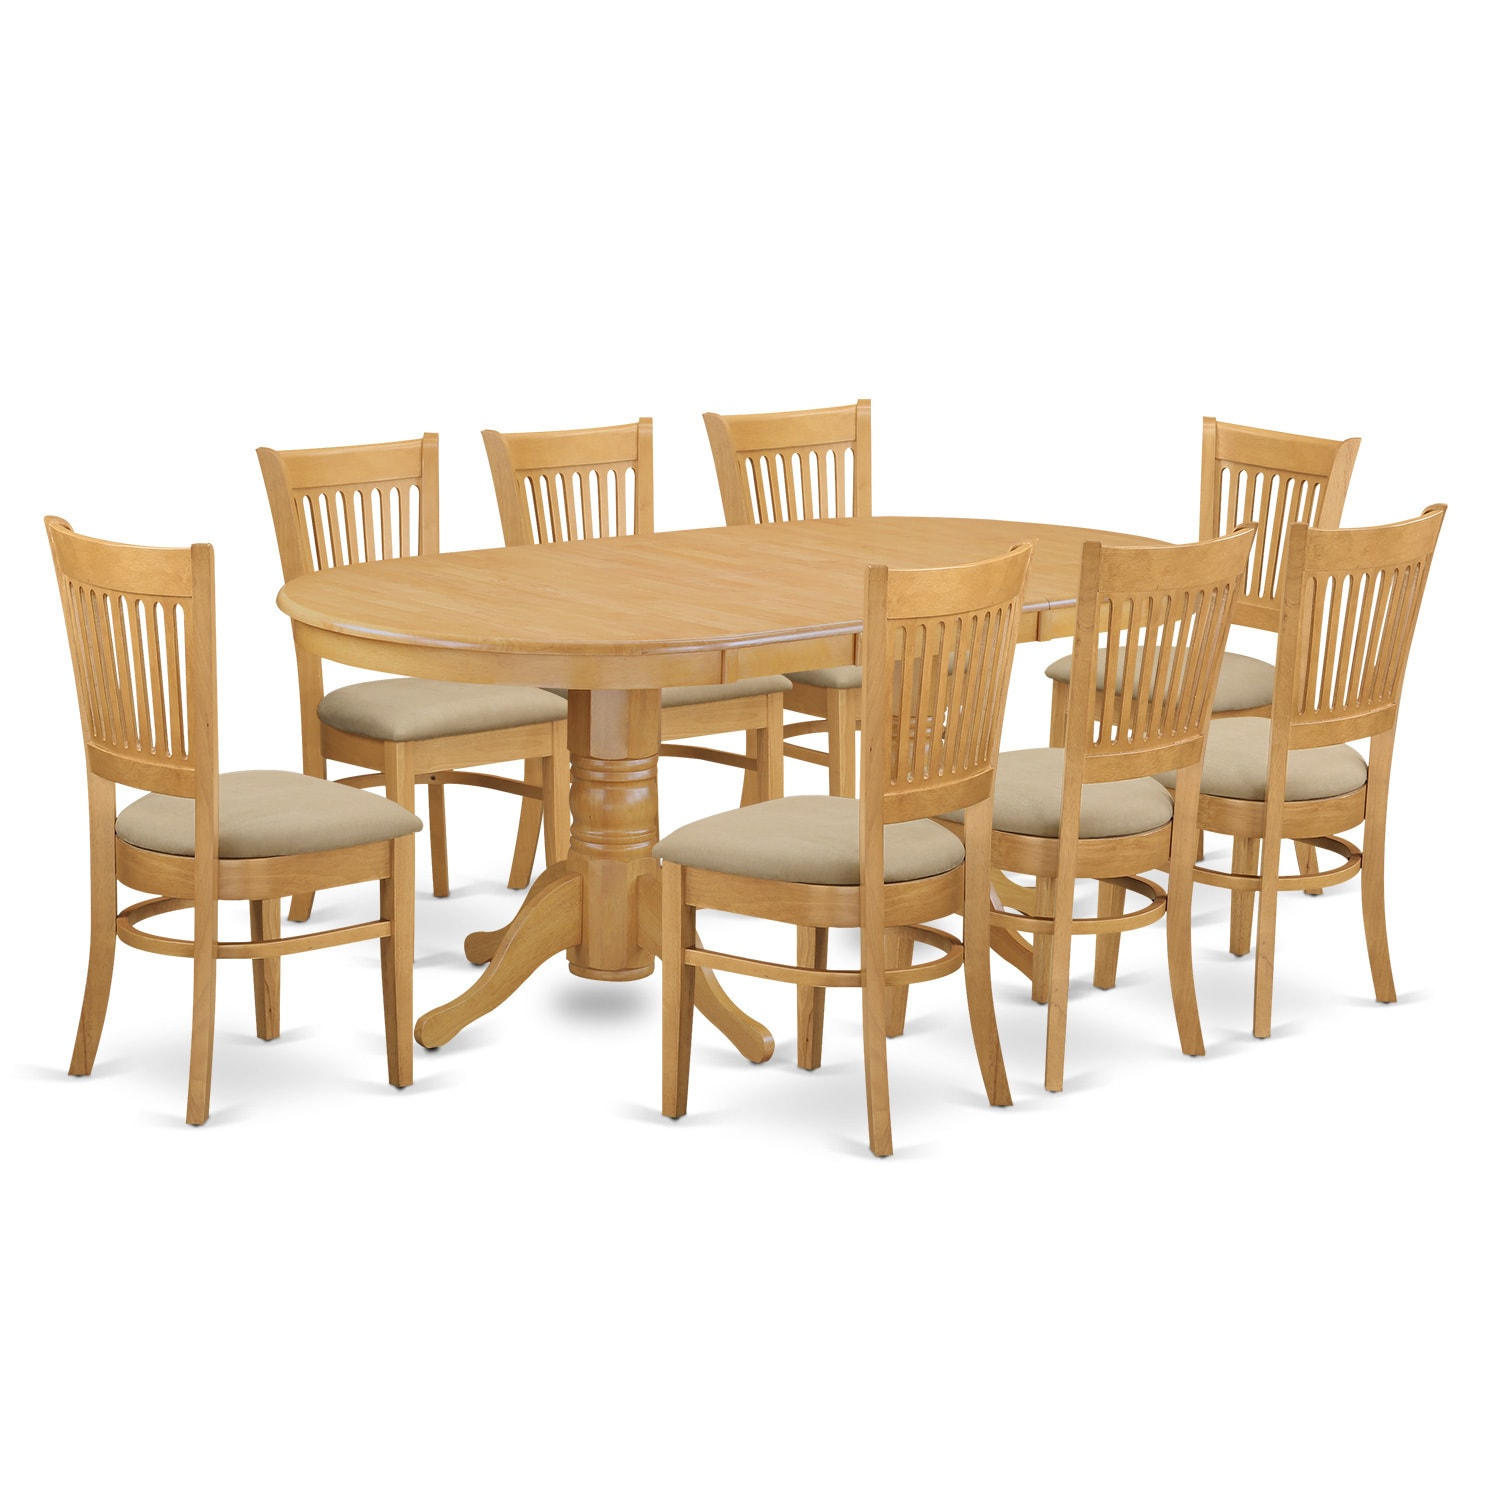 VANC9 Oak (Brown) Finish Rubberwood Dining Table And 8 Ch...